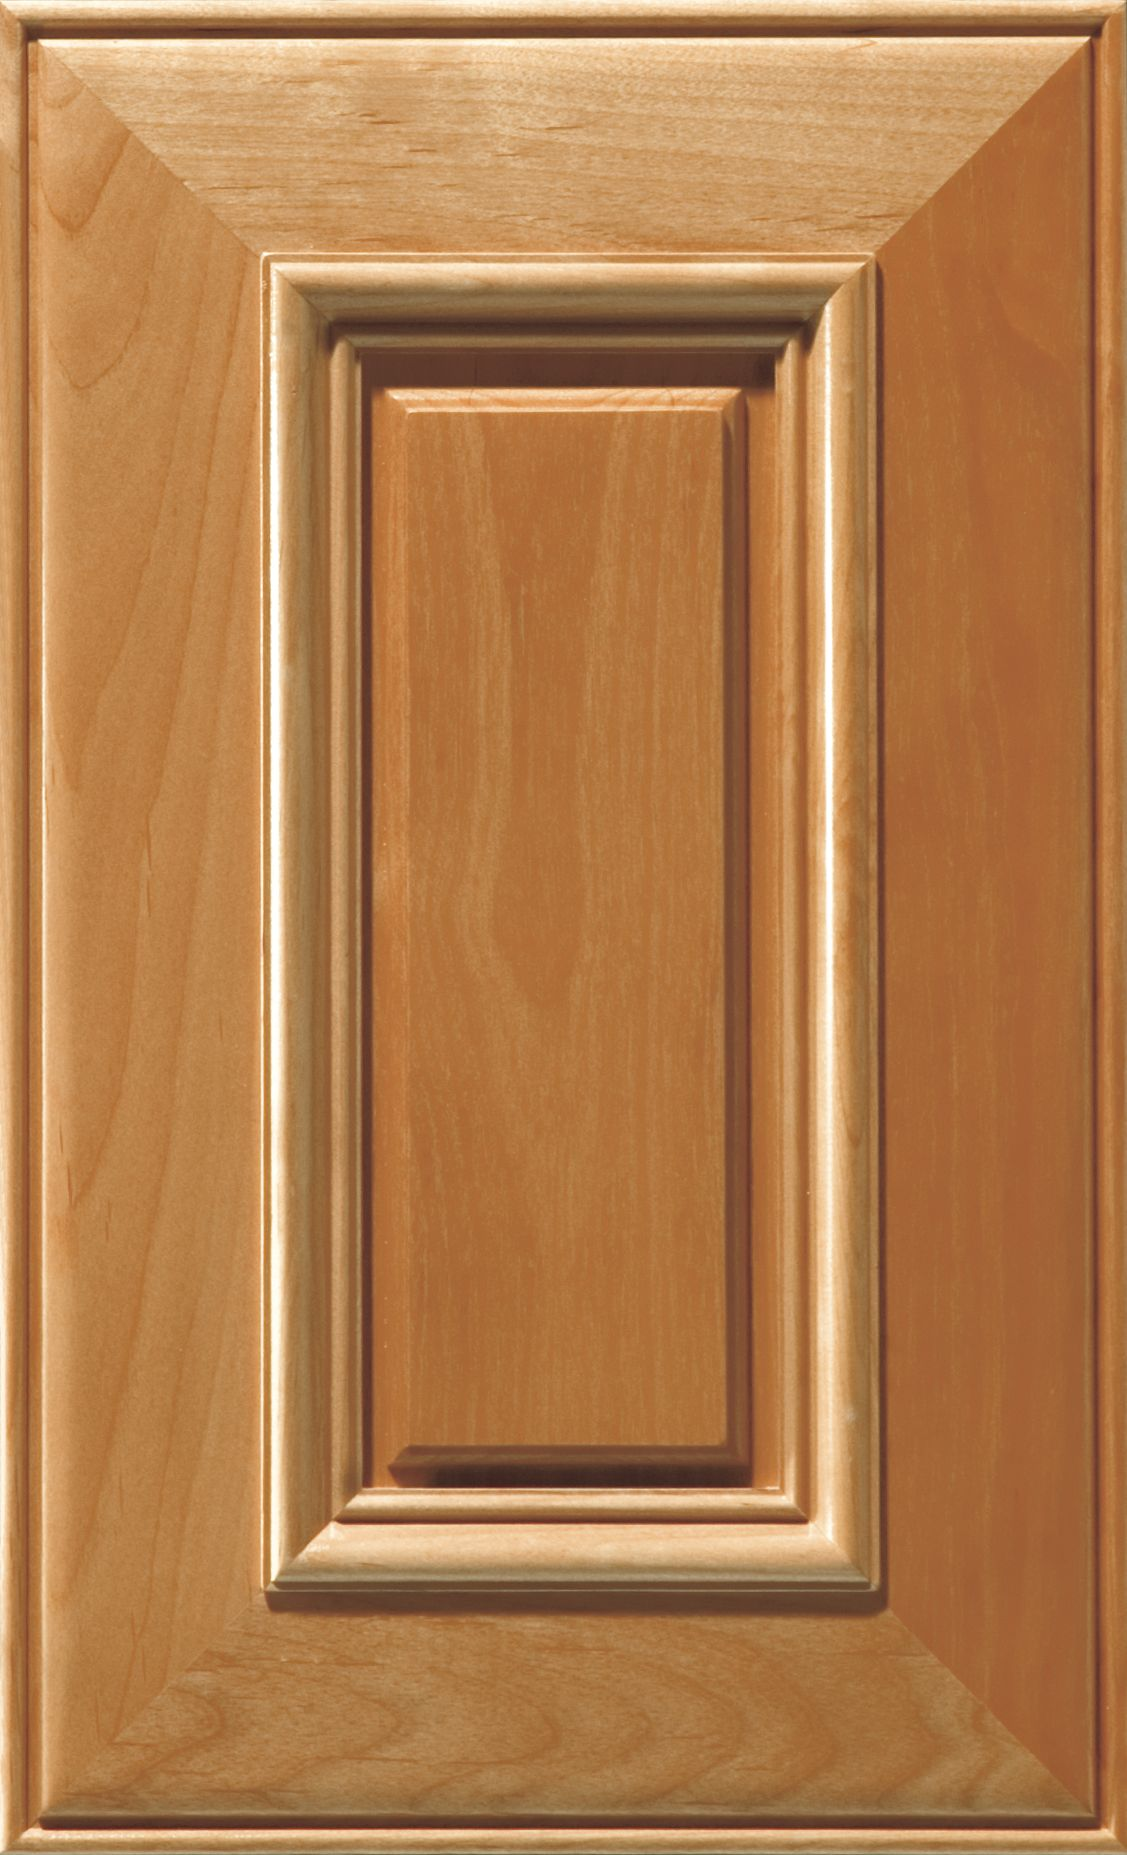 The Wide Mitered Frame With A Great Applied Molding Makes This Door Style Very Popular C Replacement Kitchen Cabinet Doors Cabinet Doors Kitchen Cabinet Doors